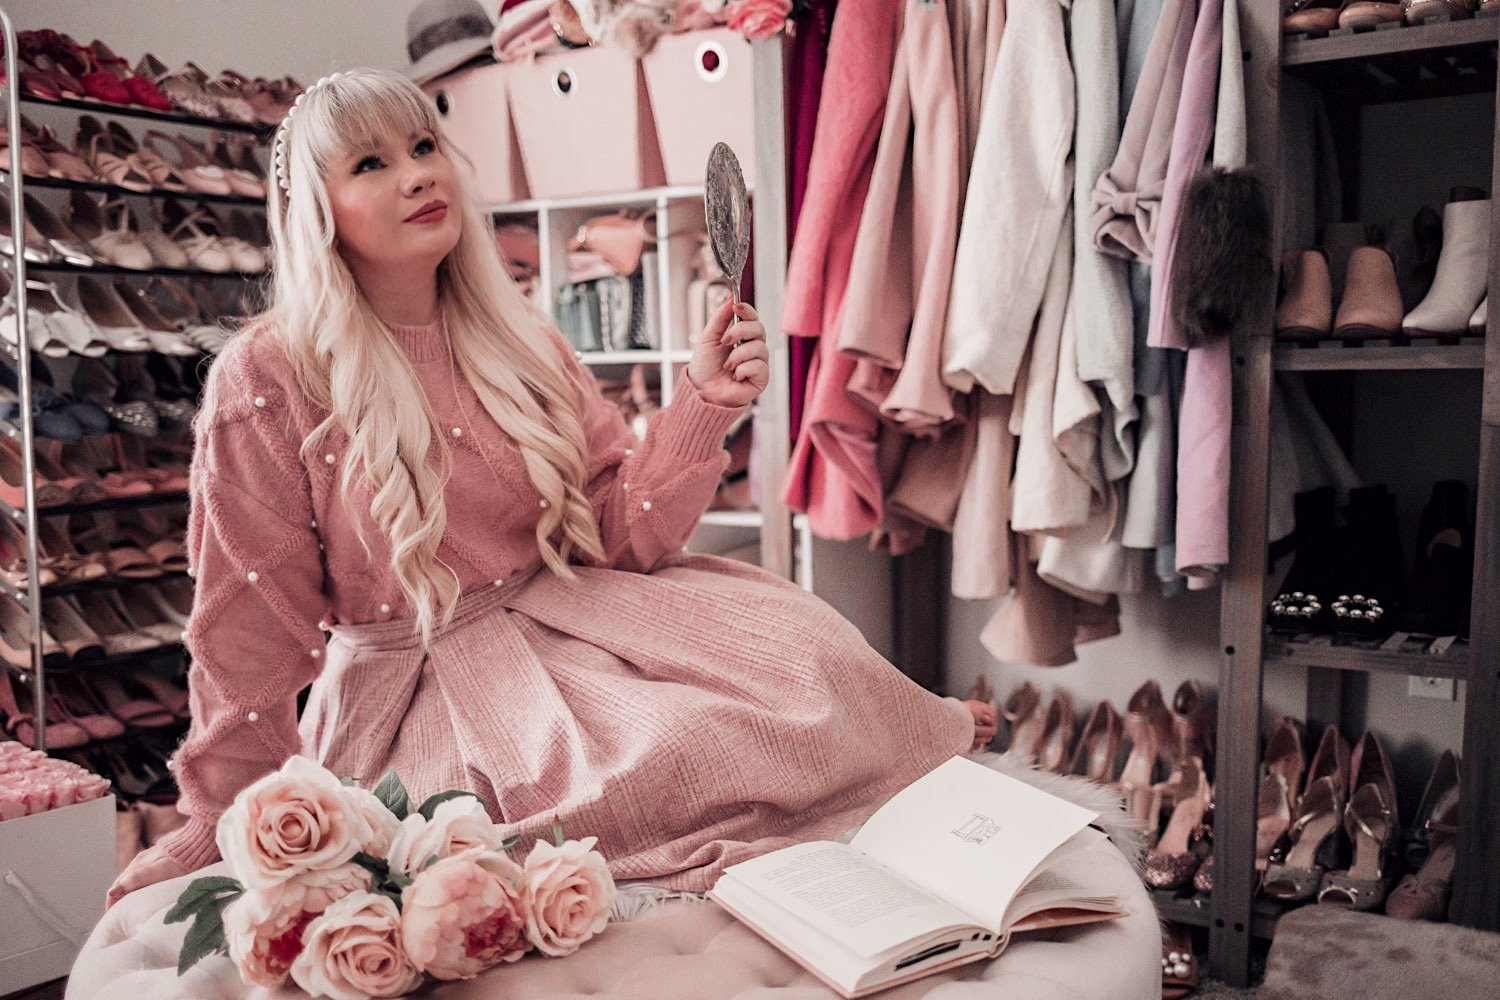 Feminine Fashion Blogger Elizabeth Hugen of Lizzie in Lace shares her December 2020 Month in Review along with a pink winter outfit